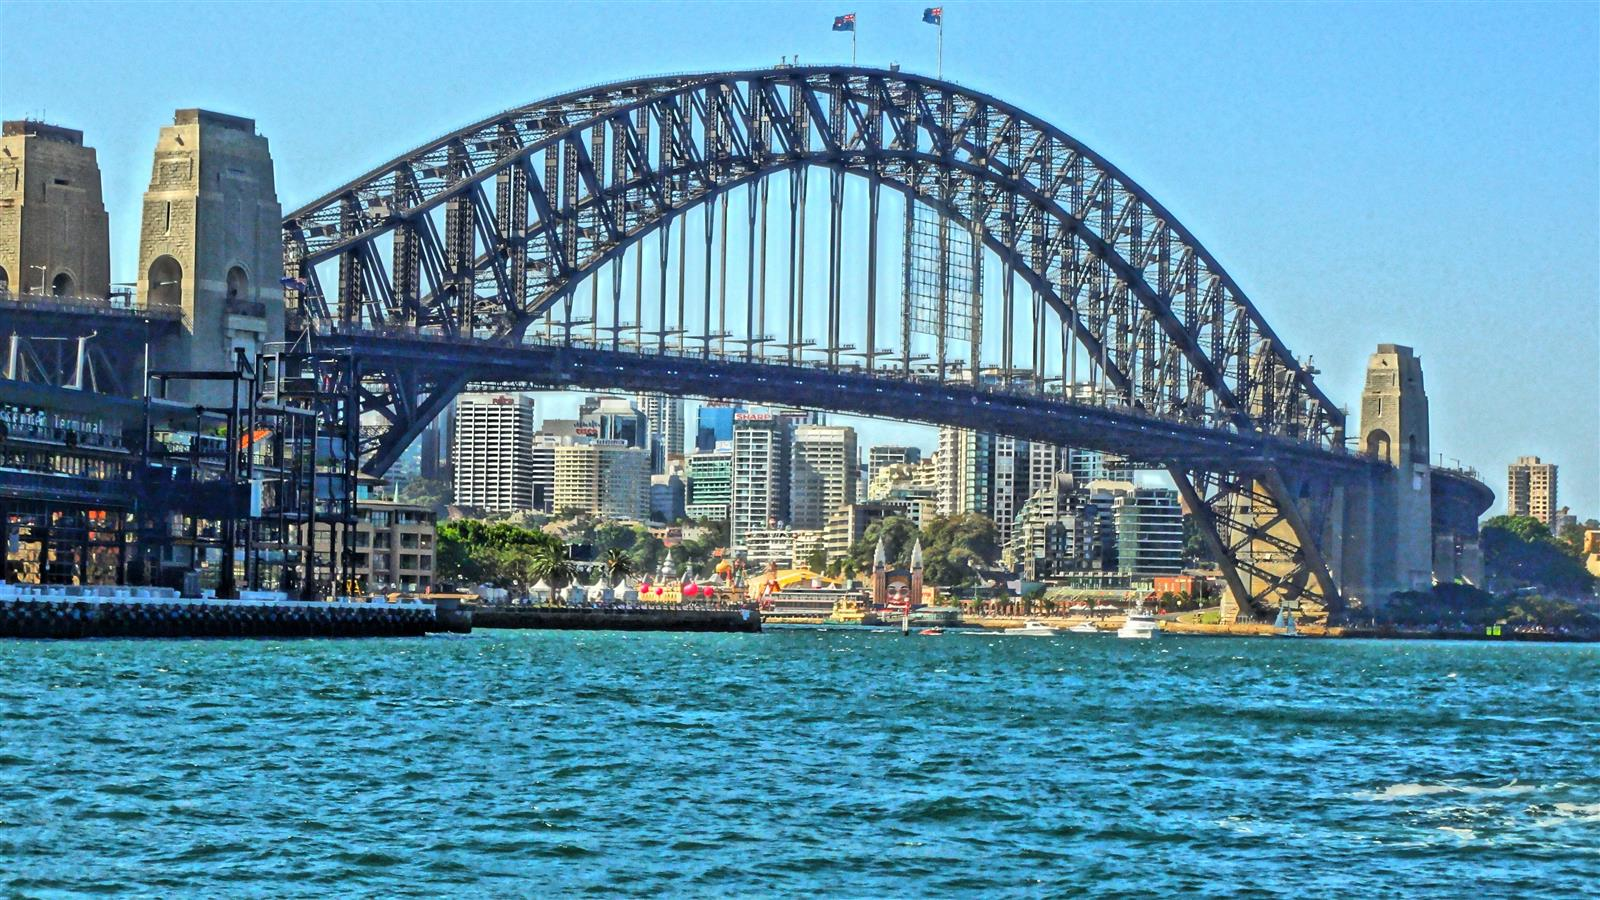 1600x900 Beautiful Sydney Harbour Bridge in Australia HD Wallpapers